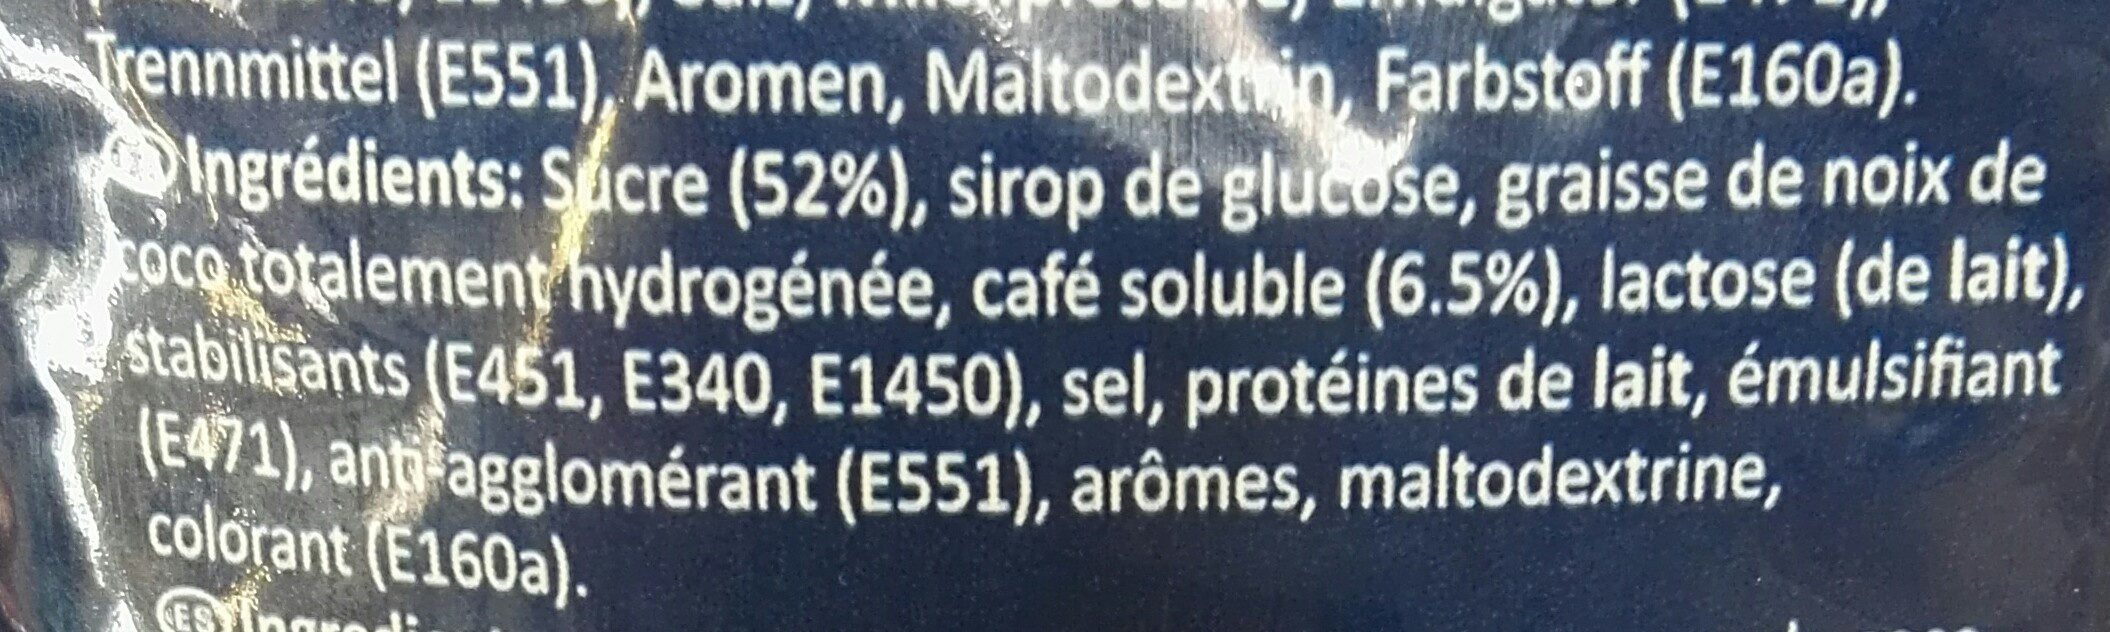 Capuccino noisette - Ingredients - fr